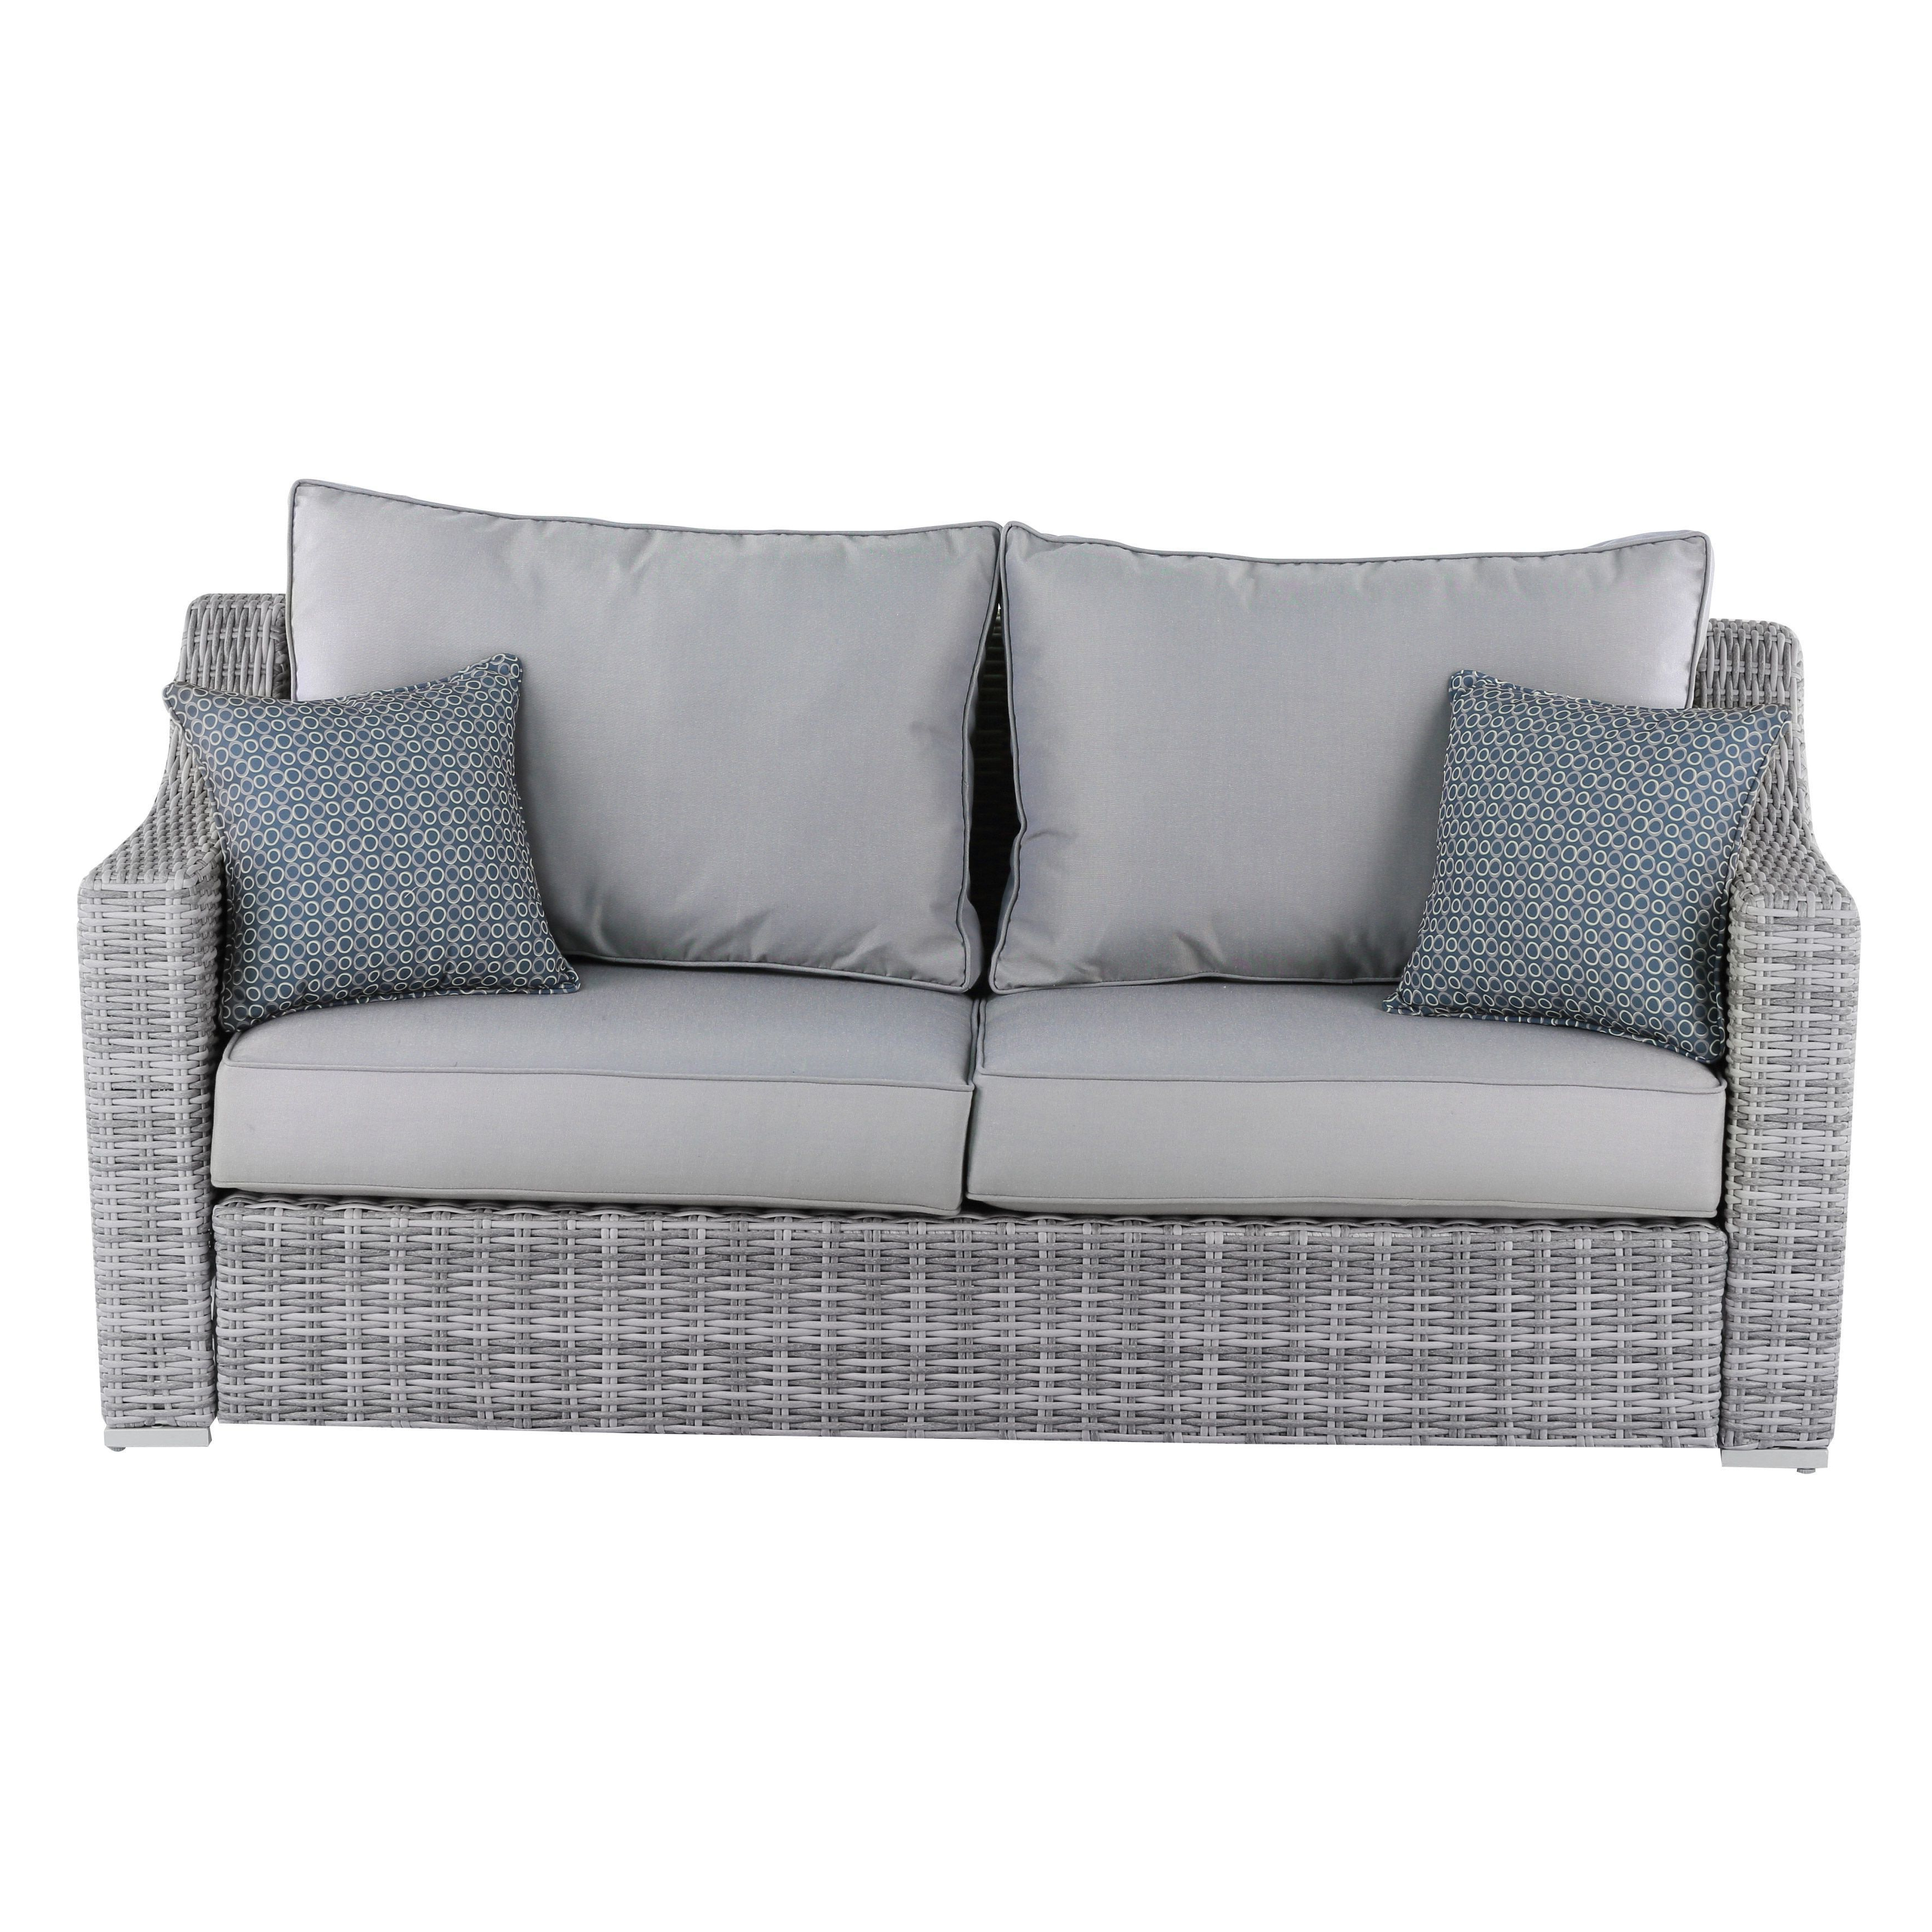 Elle Decor Vallauris Outdoor Sofa (Elle Dcor Vallauris Throughout Most Recent Huddleson Loveseats With Cushion (View 13 of 20)